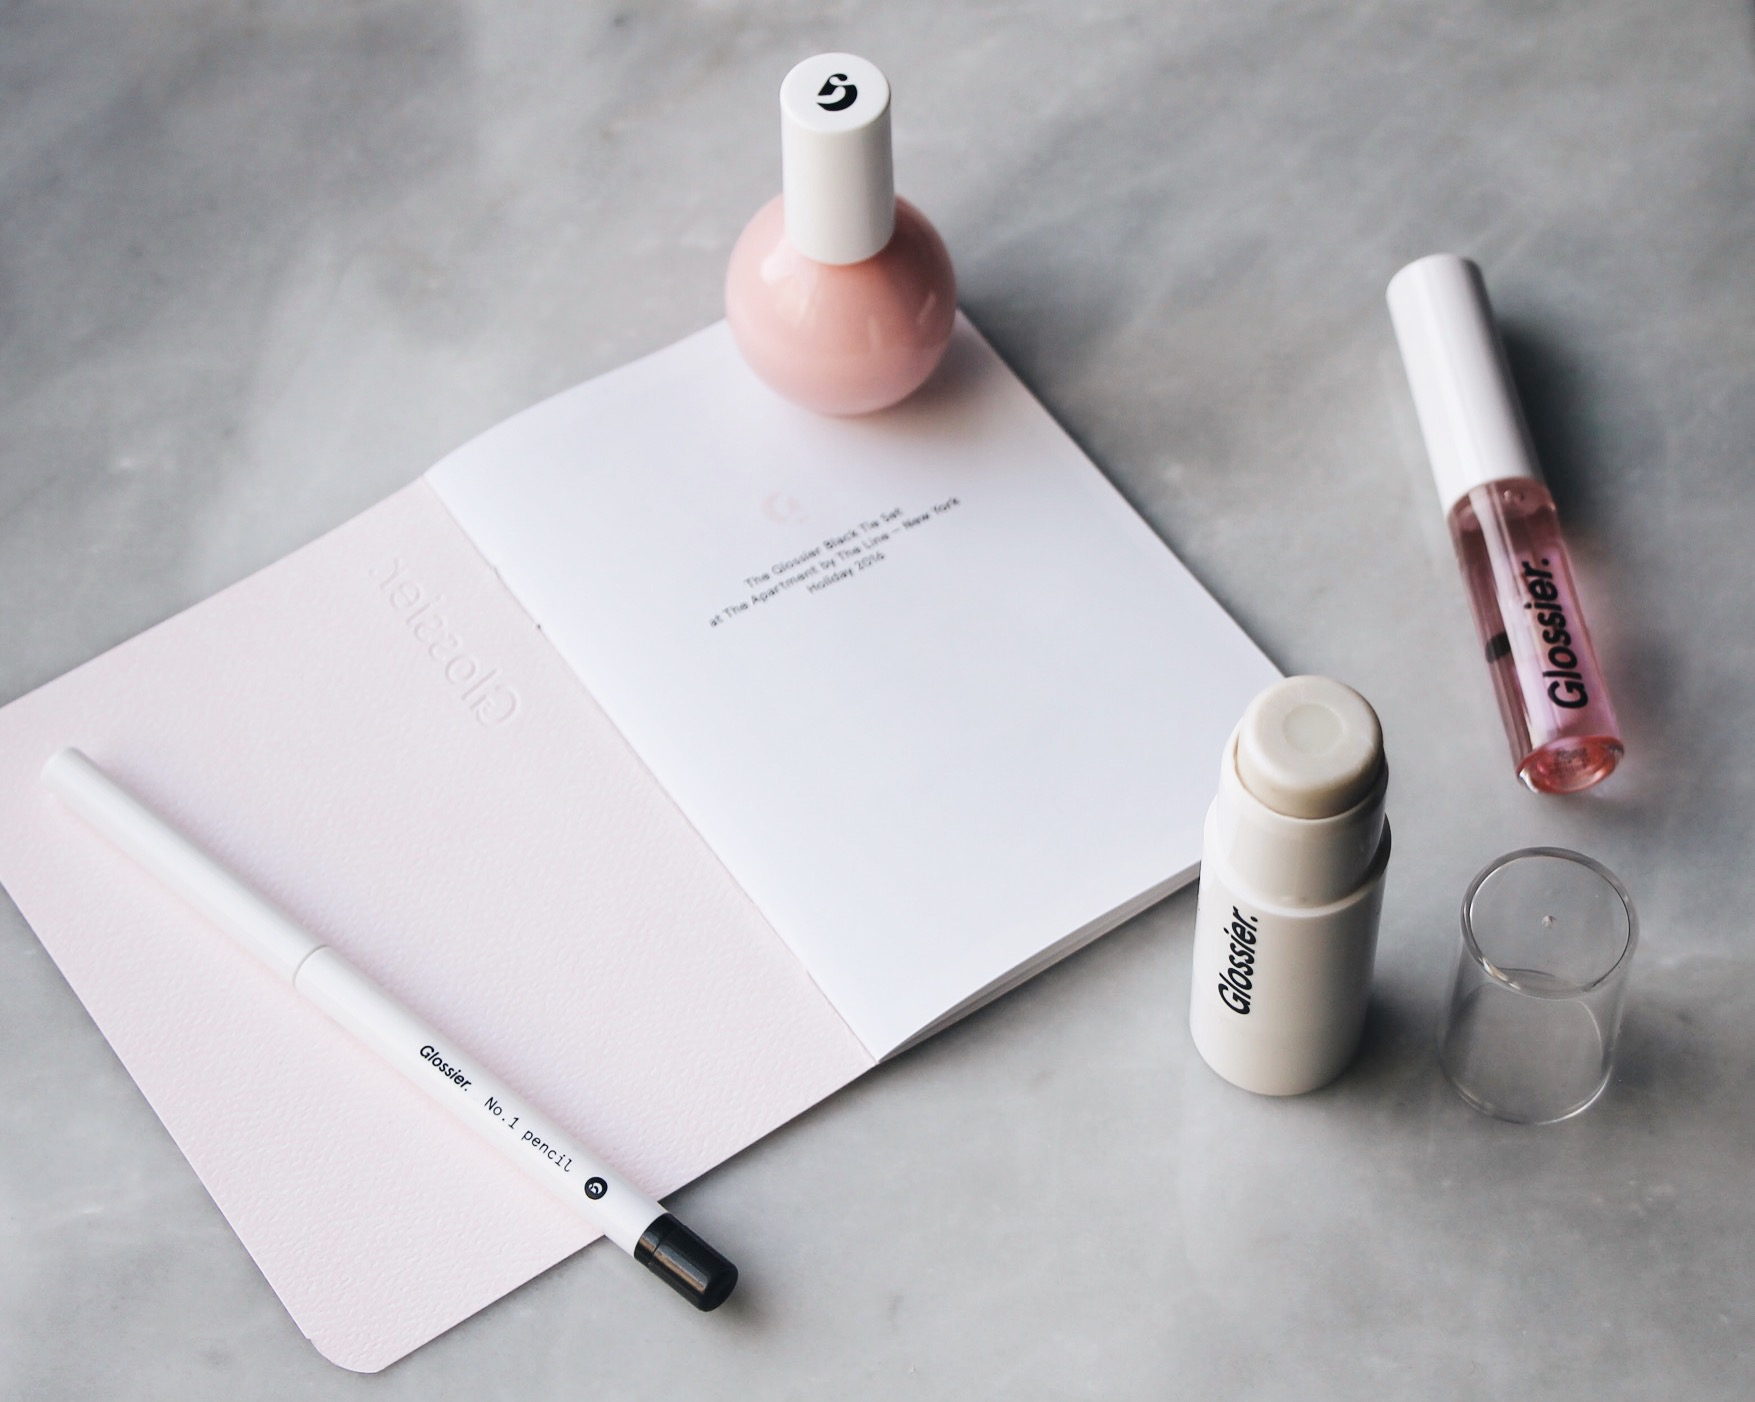 Glossier Black Tie Set, Glossier Black Tie Set Review Glossier, Black Tie Set, Limited Edition Black Tie Set, Glossier Holiday 2016, Glossier Limited Edition, Haloscope in Moonstone, Glossier Pink, Glossier Nail Polish, Glossier Eyeliner, Glossier Lip Gloss